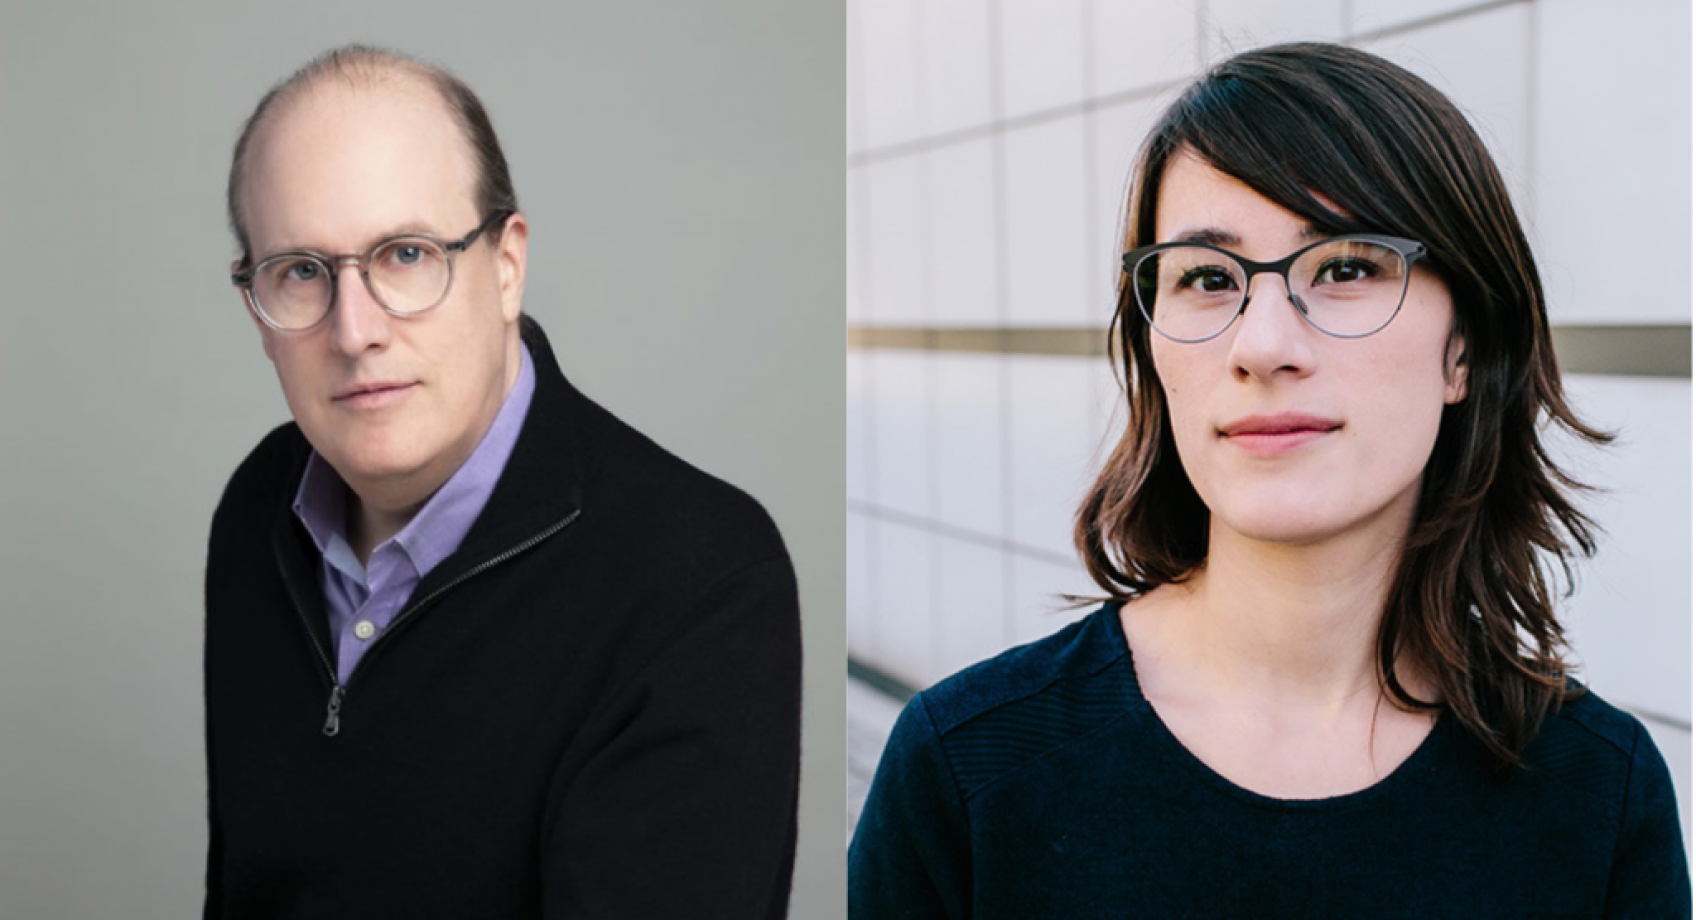 Professors Joshua Smith and Nadya Peek receive NSF award to develop open-source, customizable robotics for scientists and laboratory automation Banner